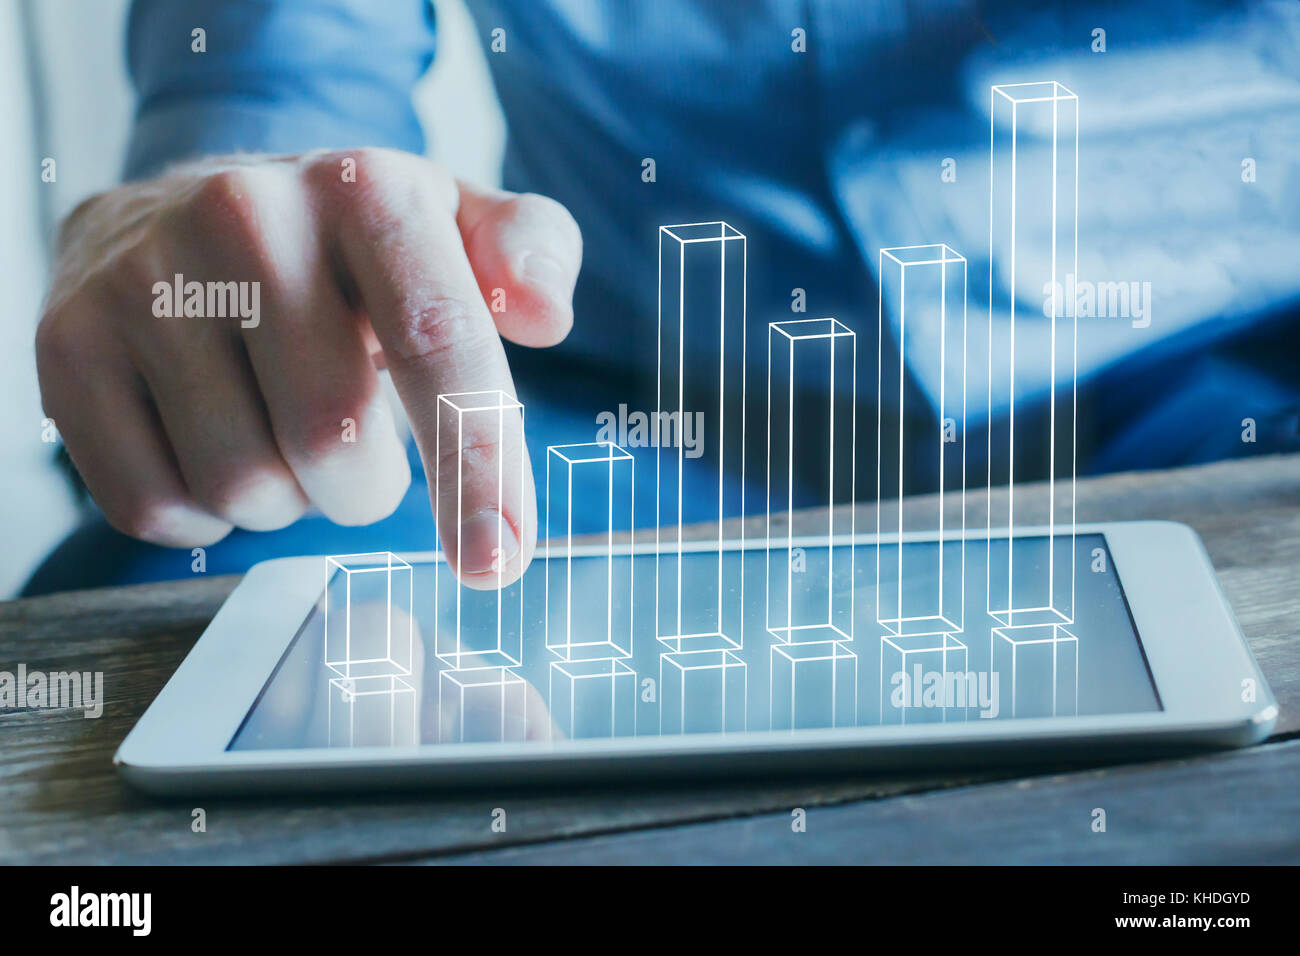 business analytics and financial technology concept, 3d chart from the screen of digital tablet computer - Stock Image